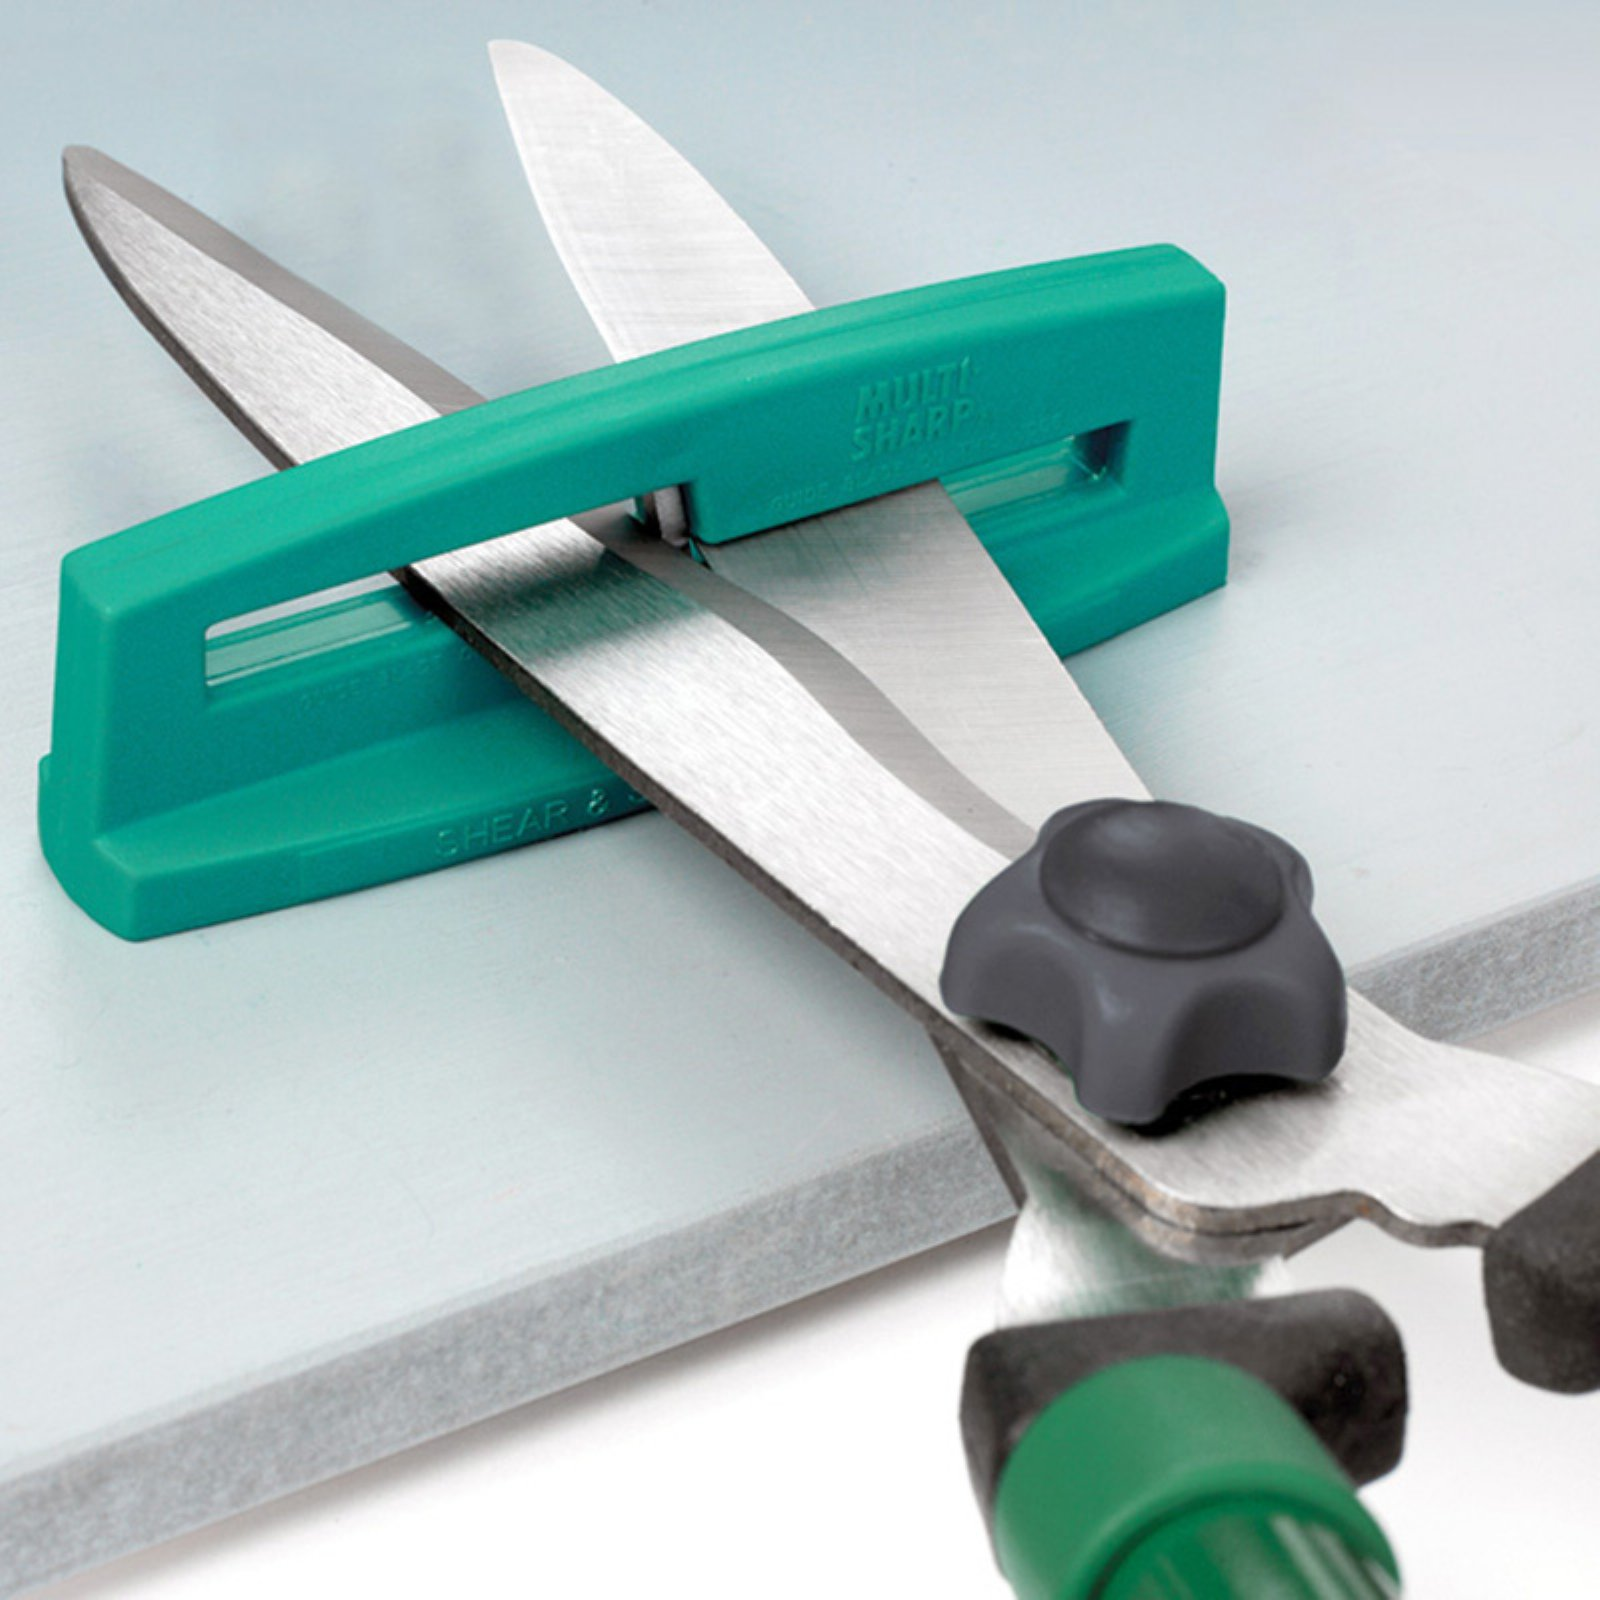 Tierra Garden Multi-Sharp Shear and Scissor Sharpener